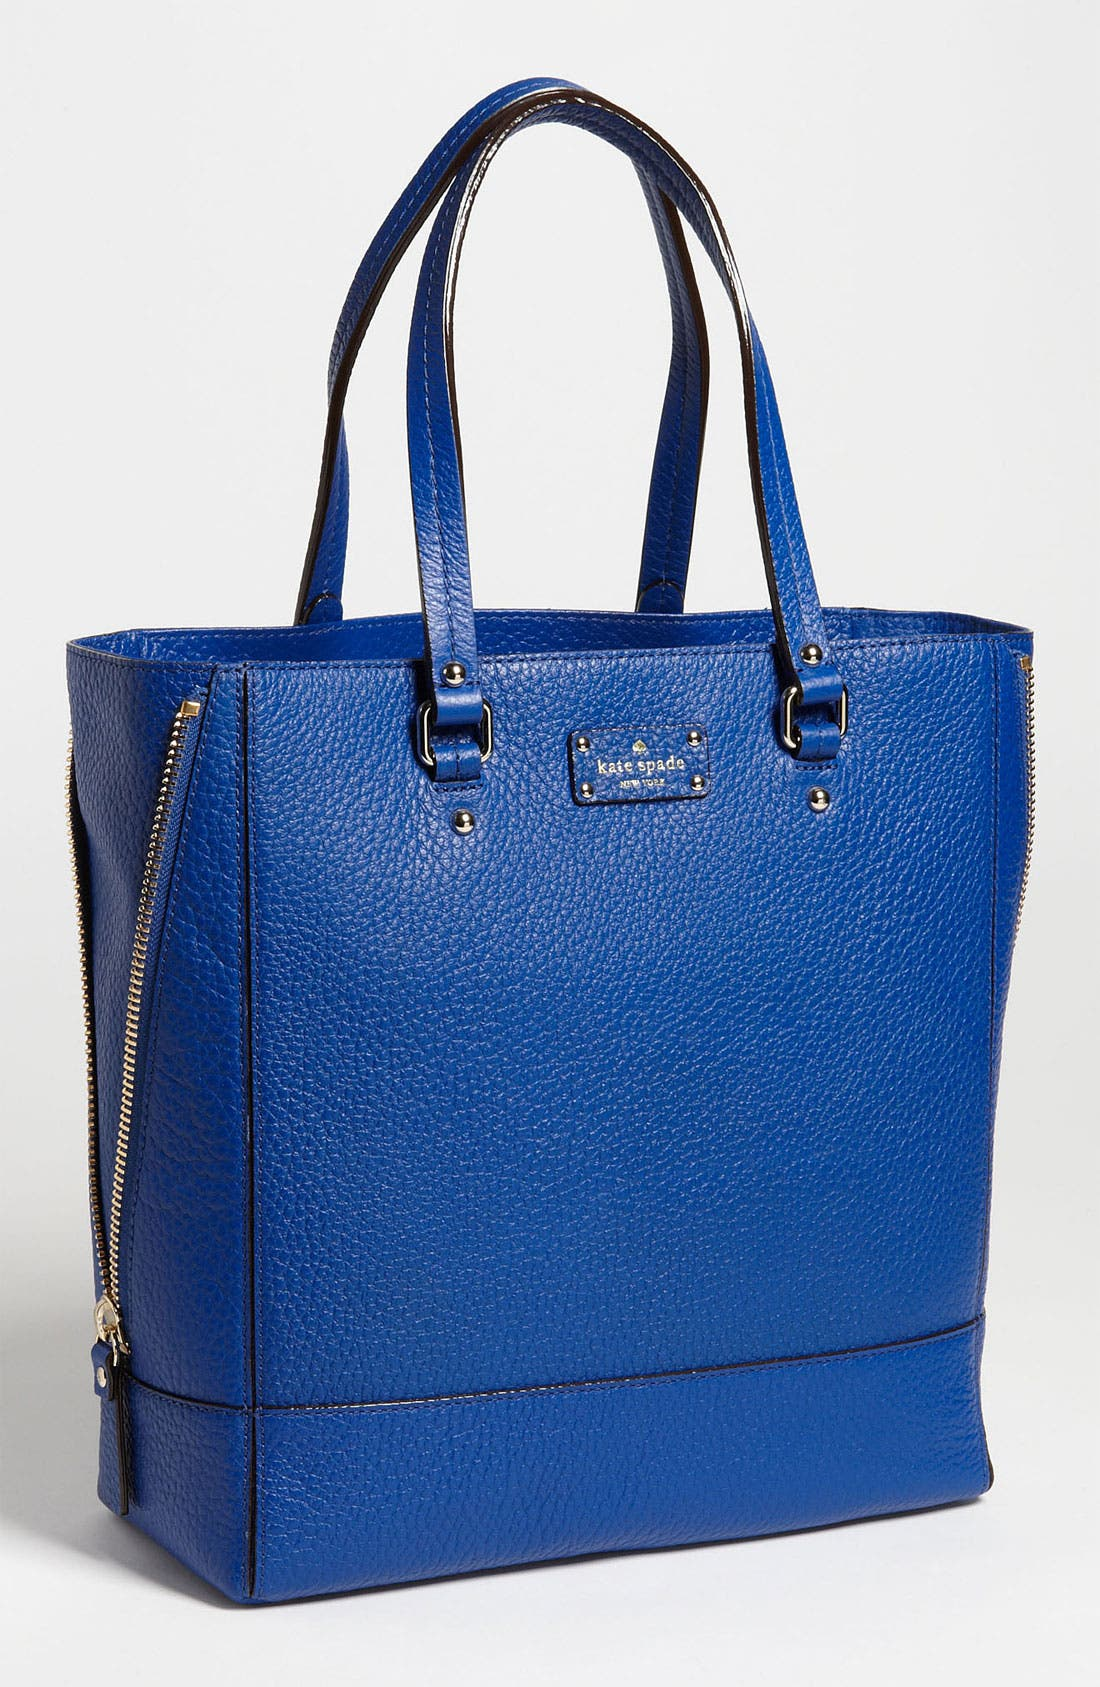 Alternate Image 1 Selected - kate spade new york 'grove court - thea' leather tote